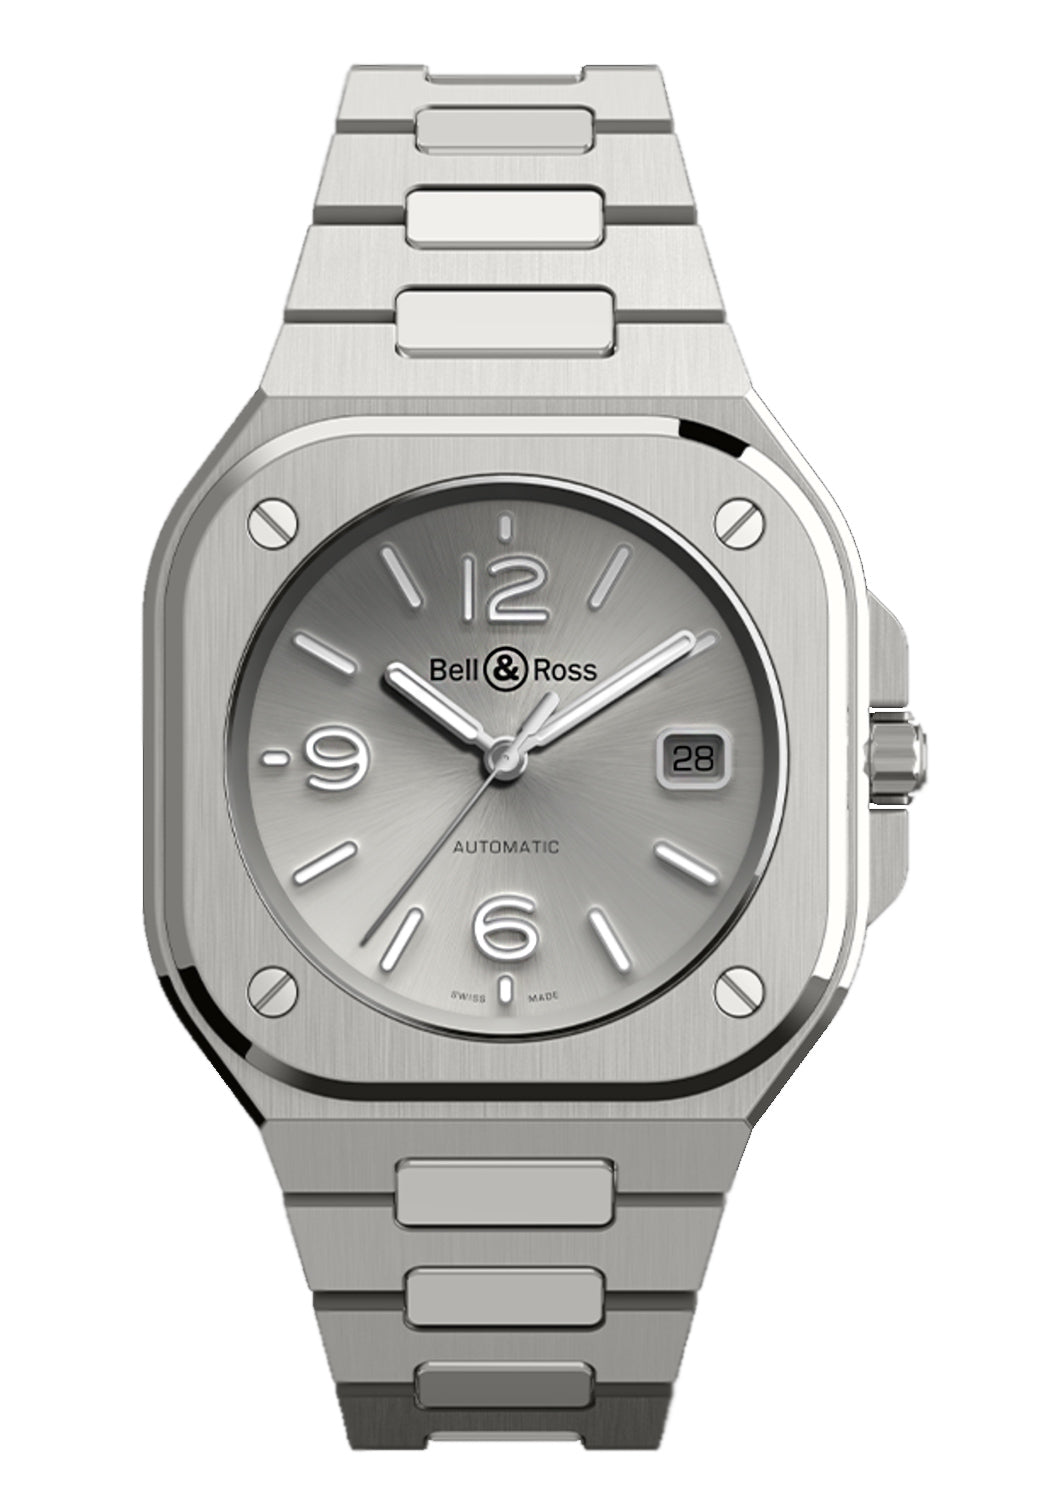 Bell & Ross BR 05 GREY STEEL